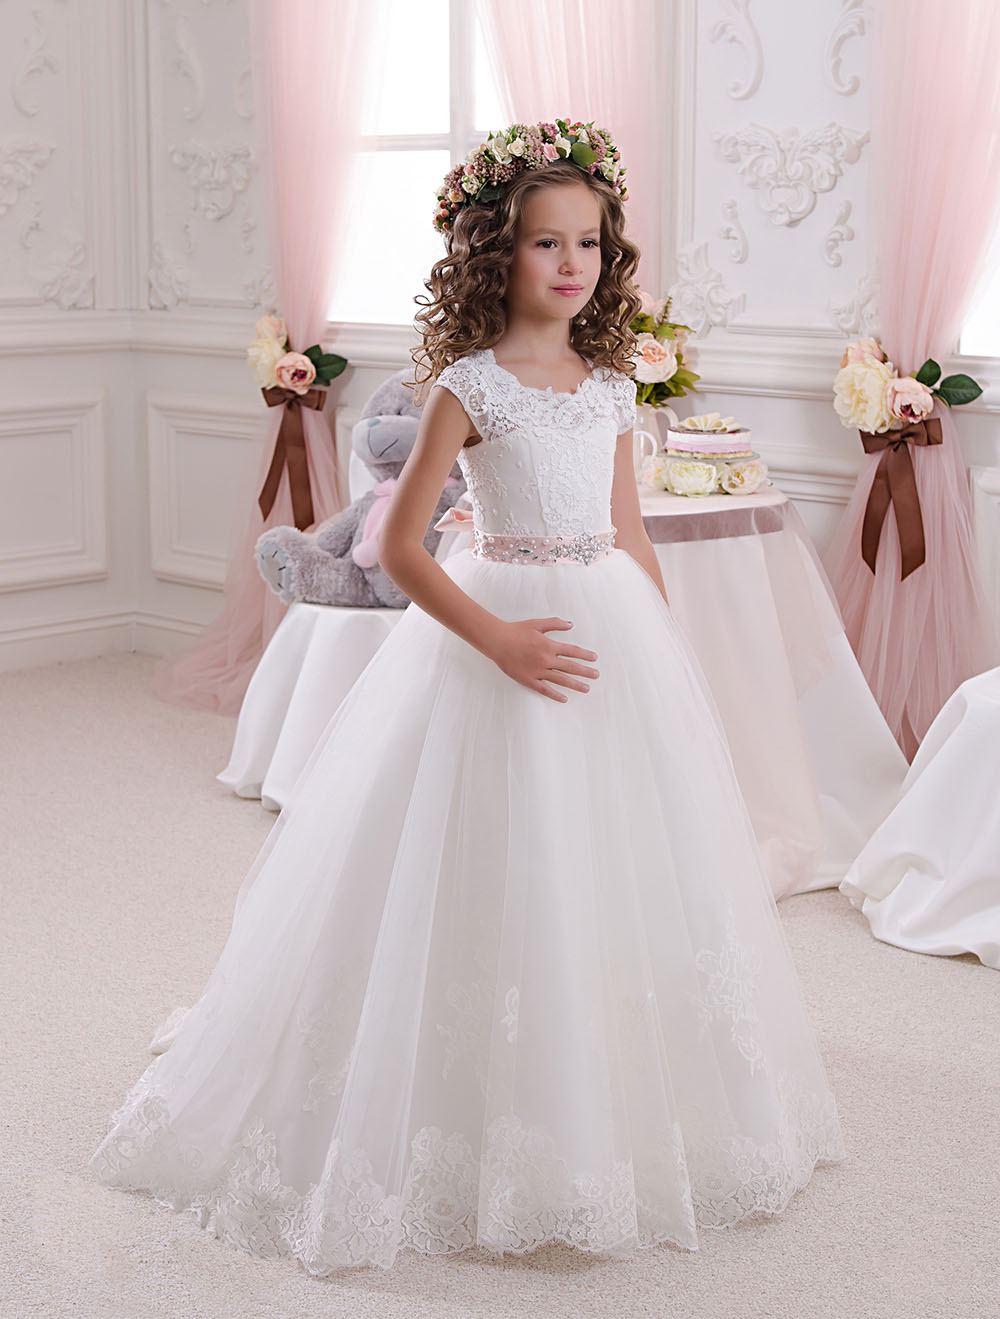 Hot Princess Scoop White Lace Flower Girls Dresses 2017 Ball Gown